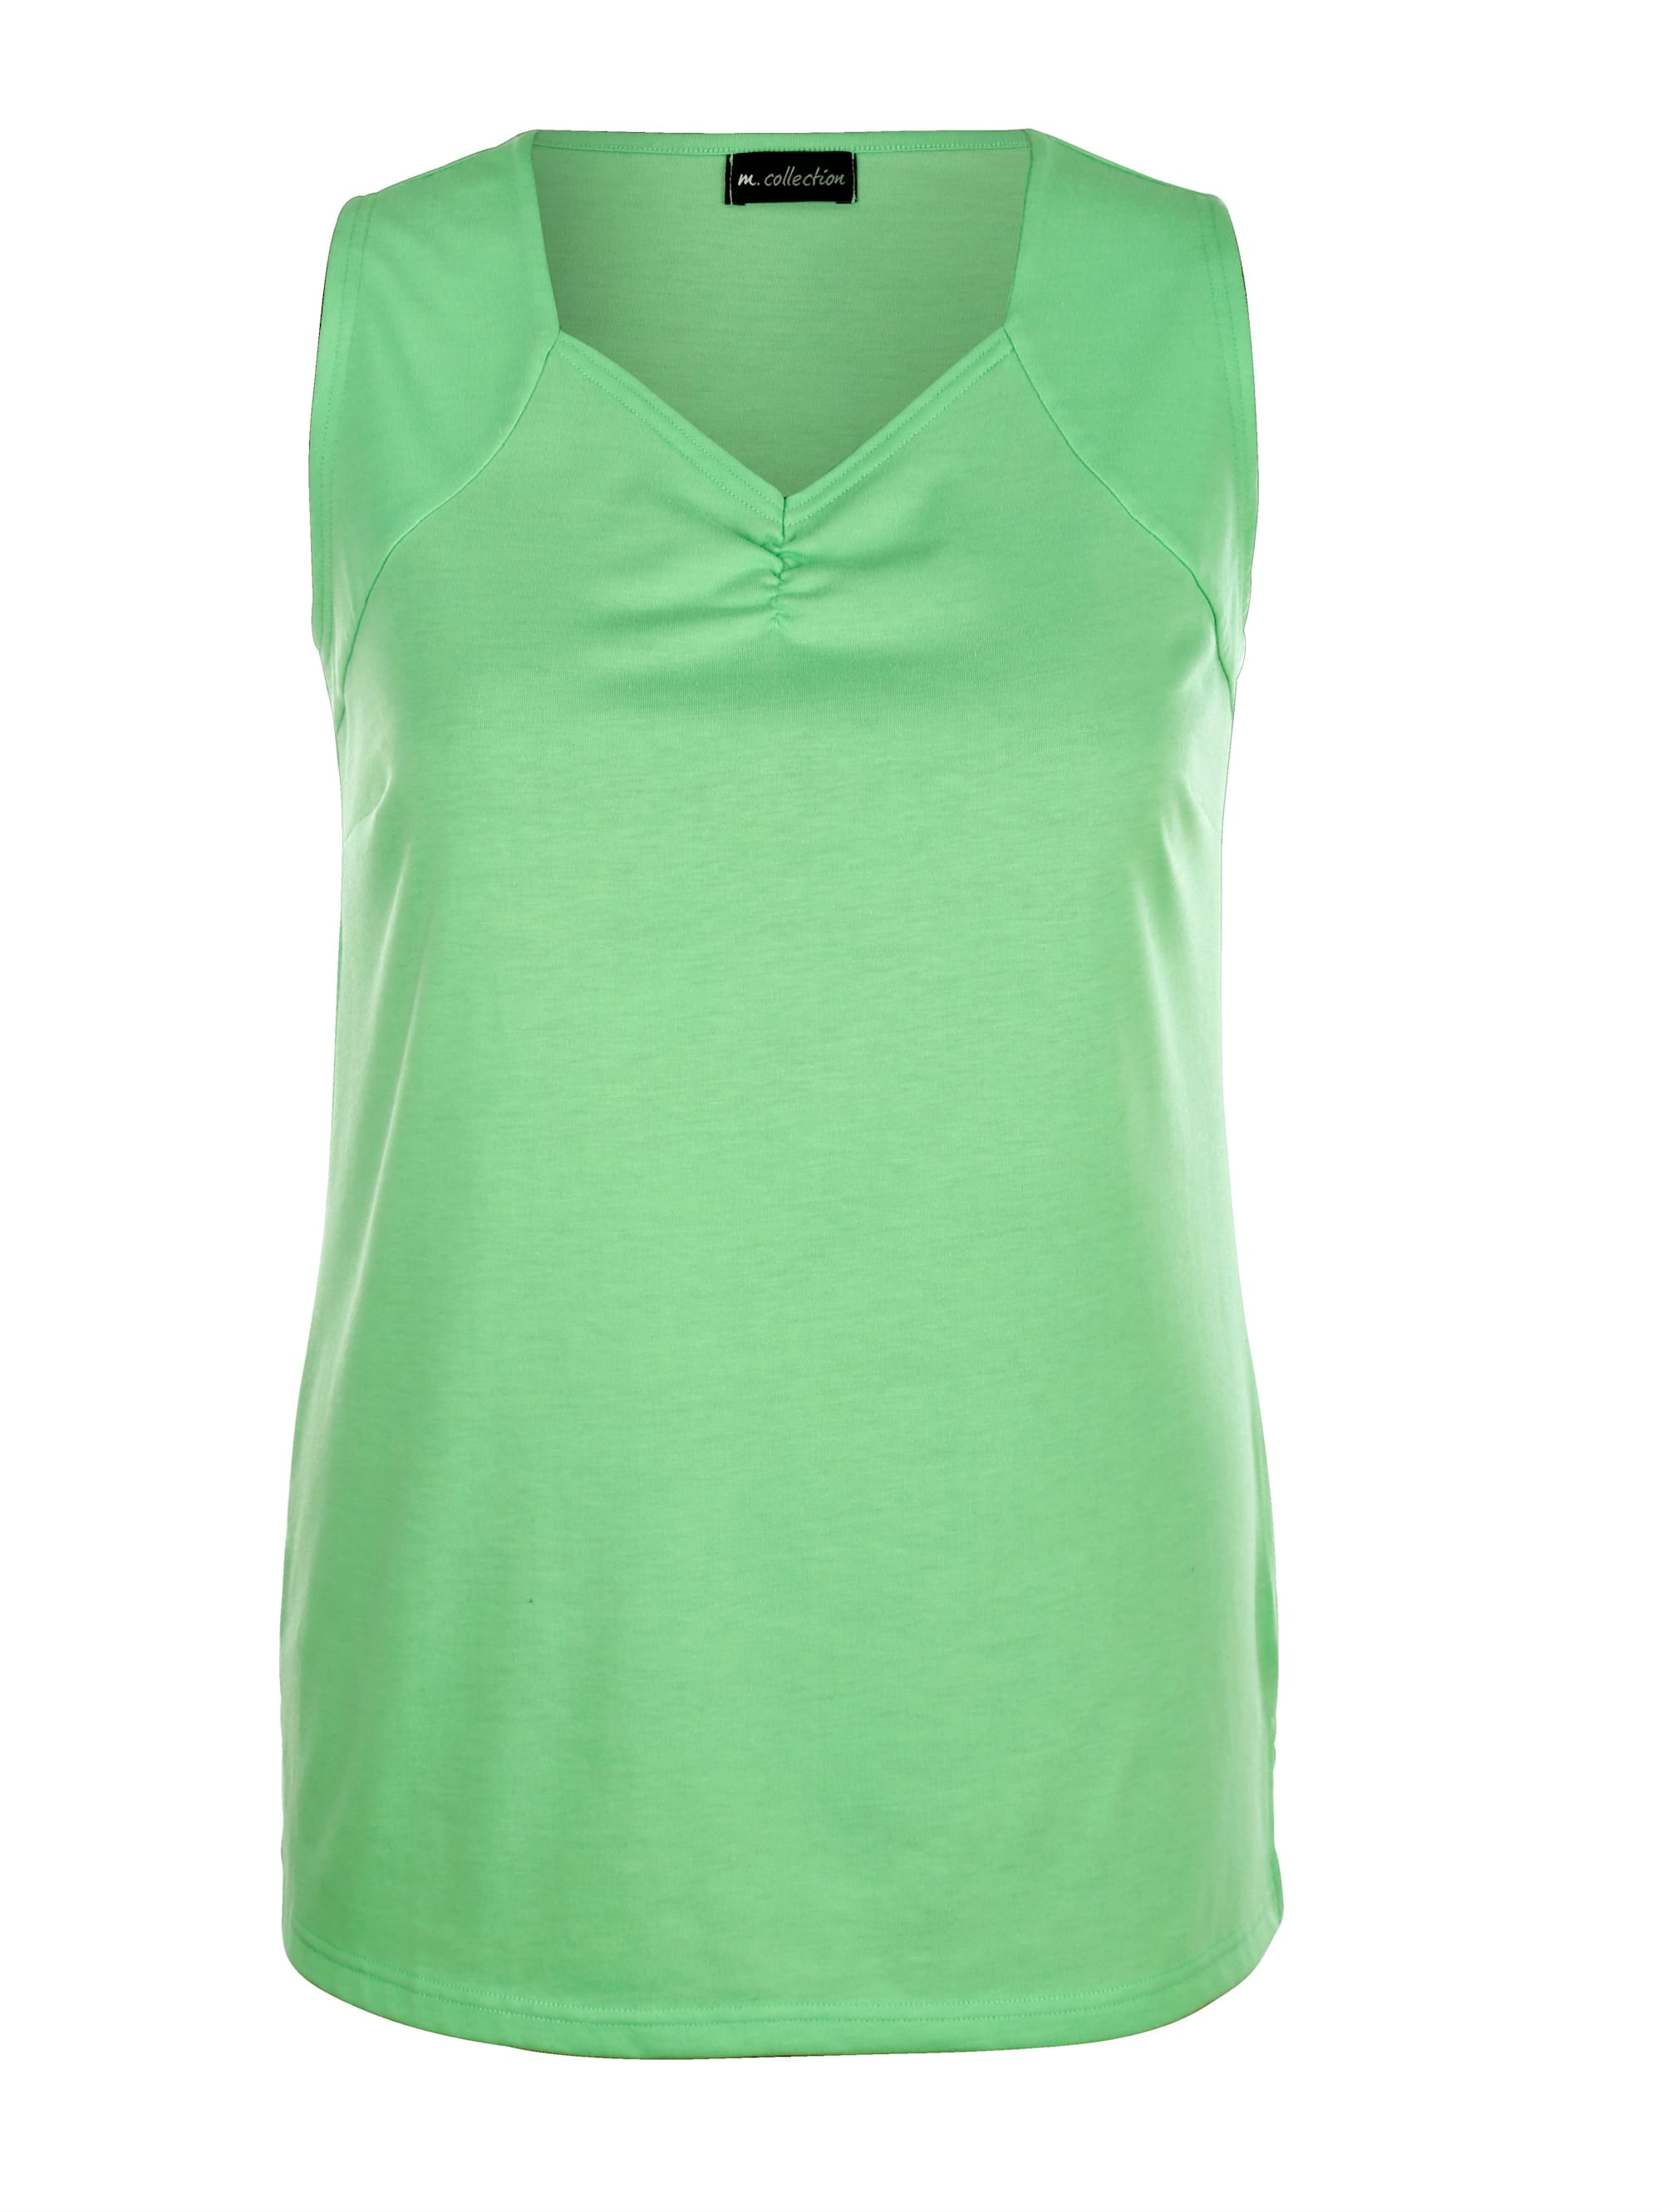 m. collection -  Tanktop